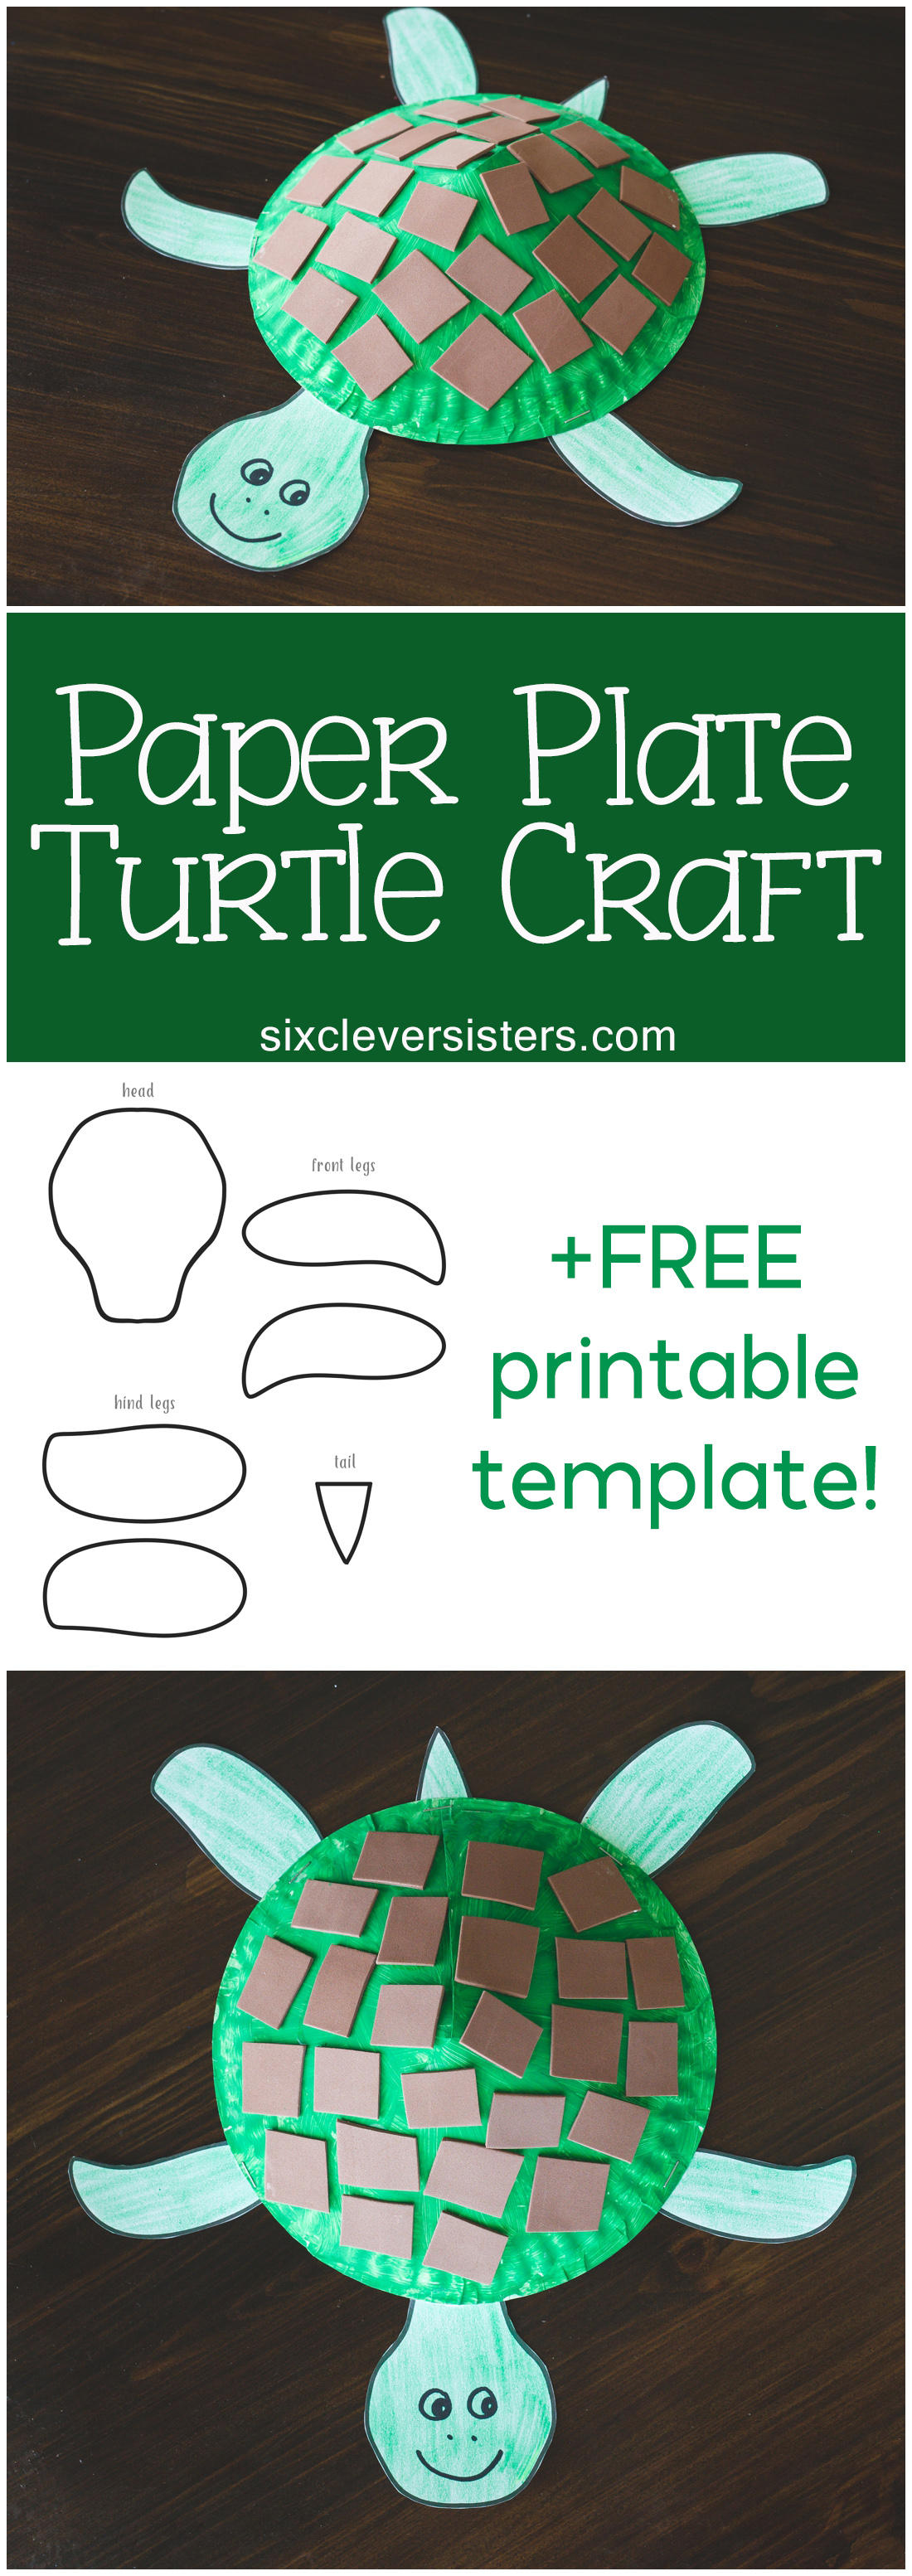 Current image for free printable paper crafts